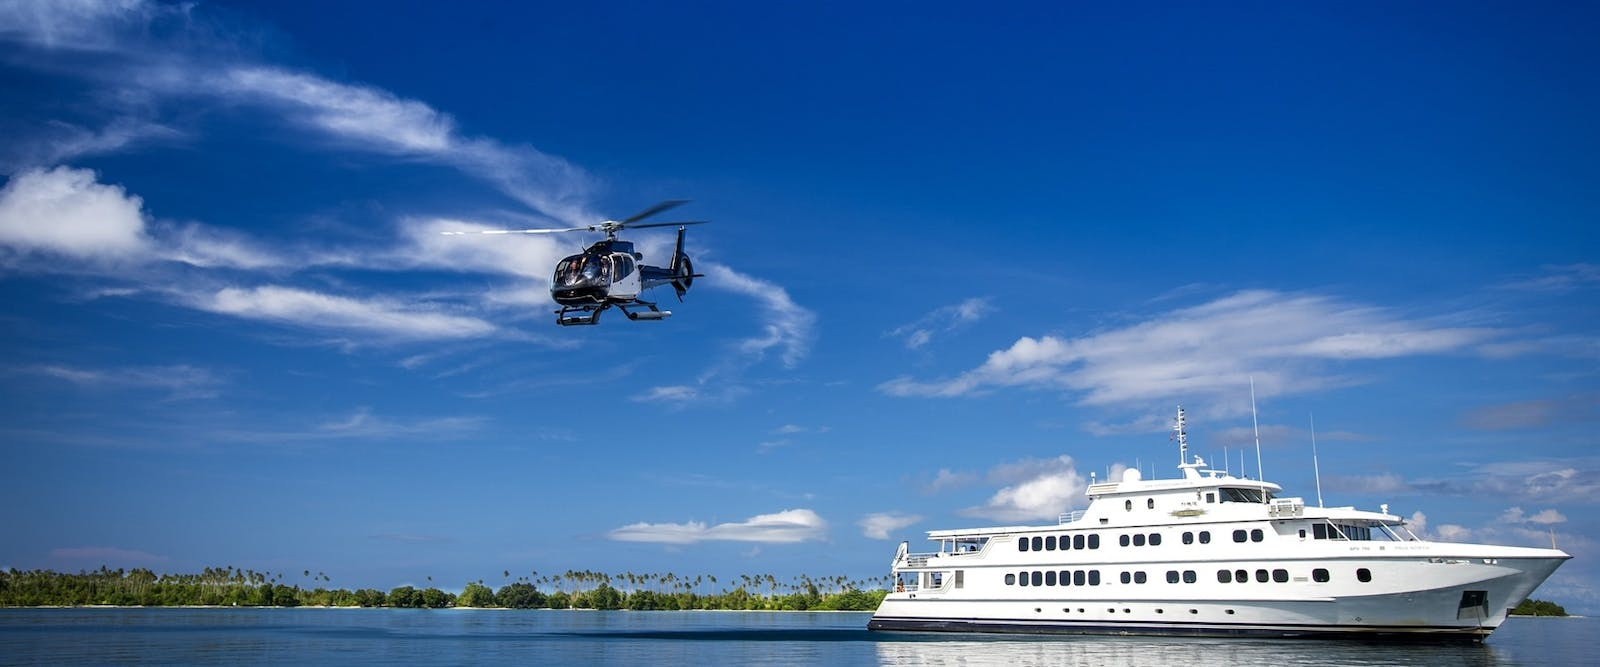 Helicopter Adventure, True North Cruise, The Kimberley